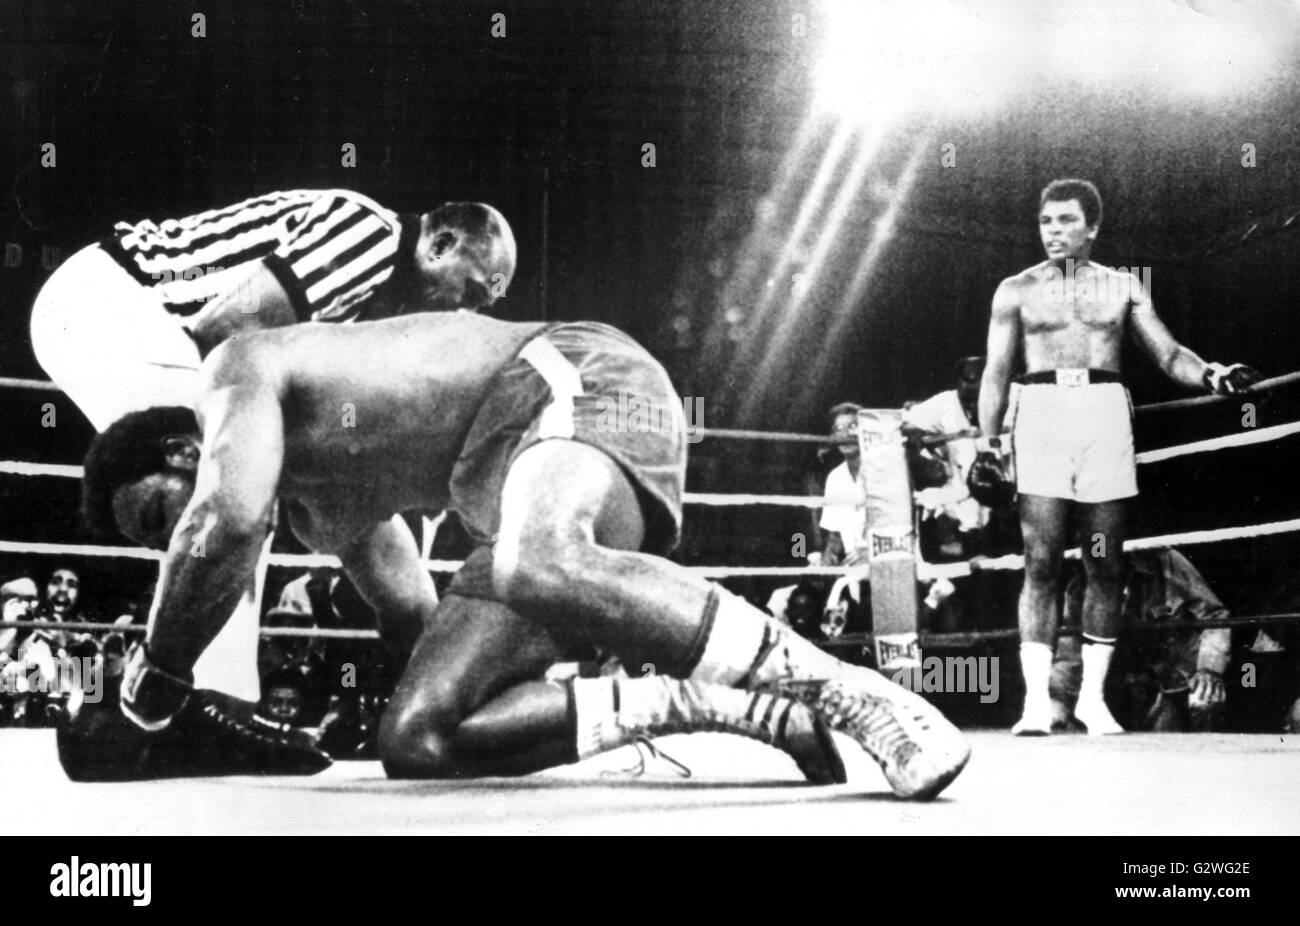 File a file picture dated 30 october 1974 shows us heavyweight boxer muhammad ali back r standing in a corner as his knocked out opponent george foreman